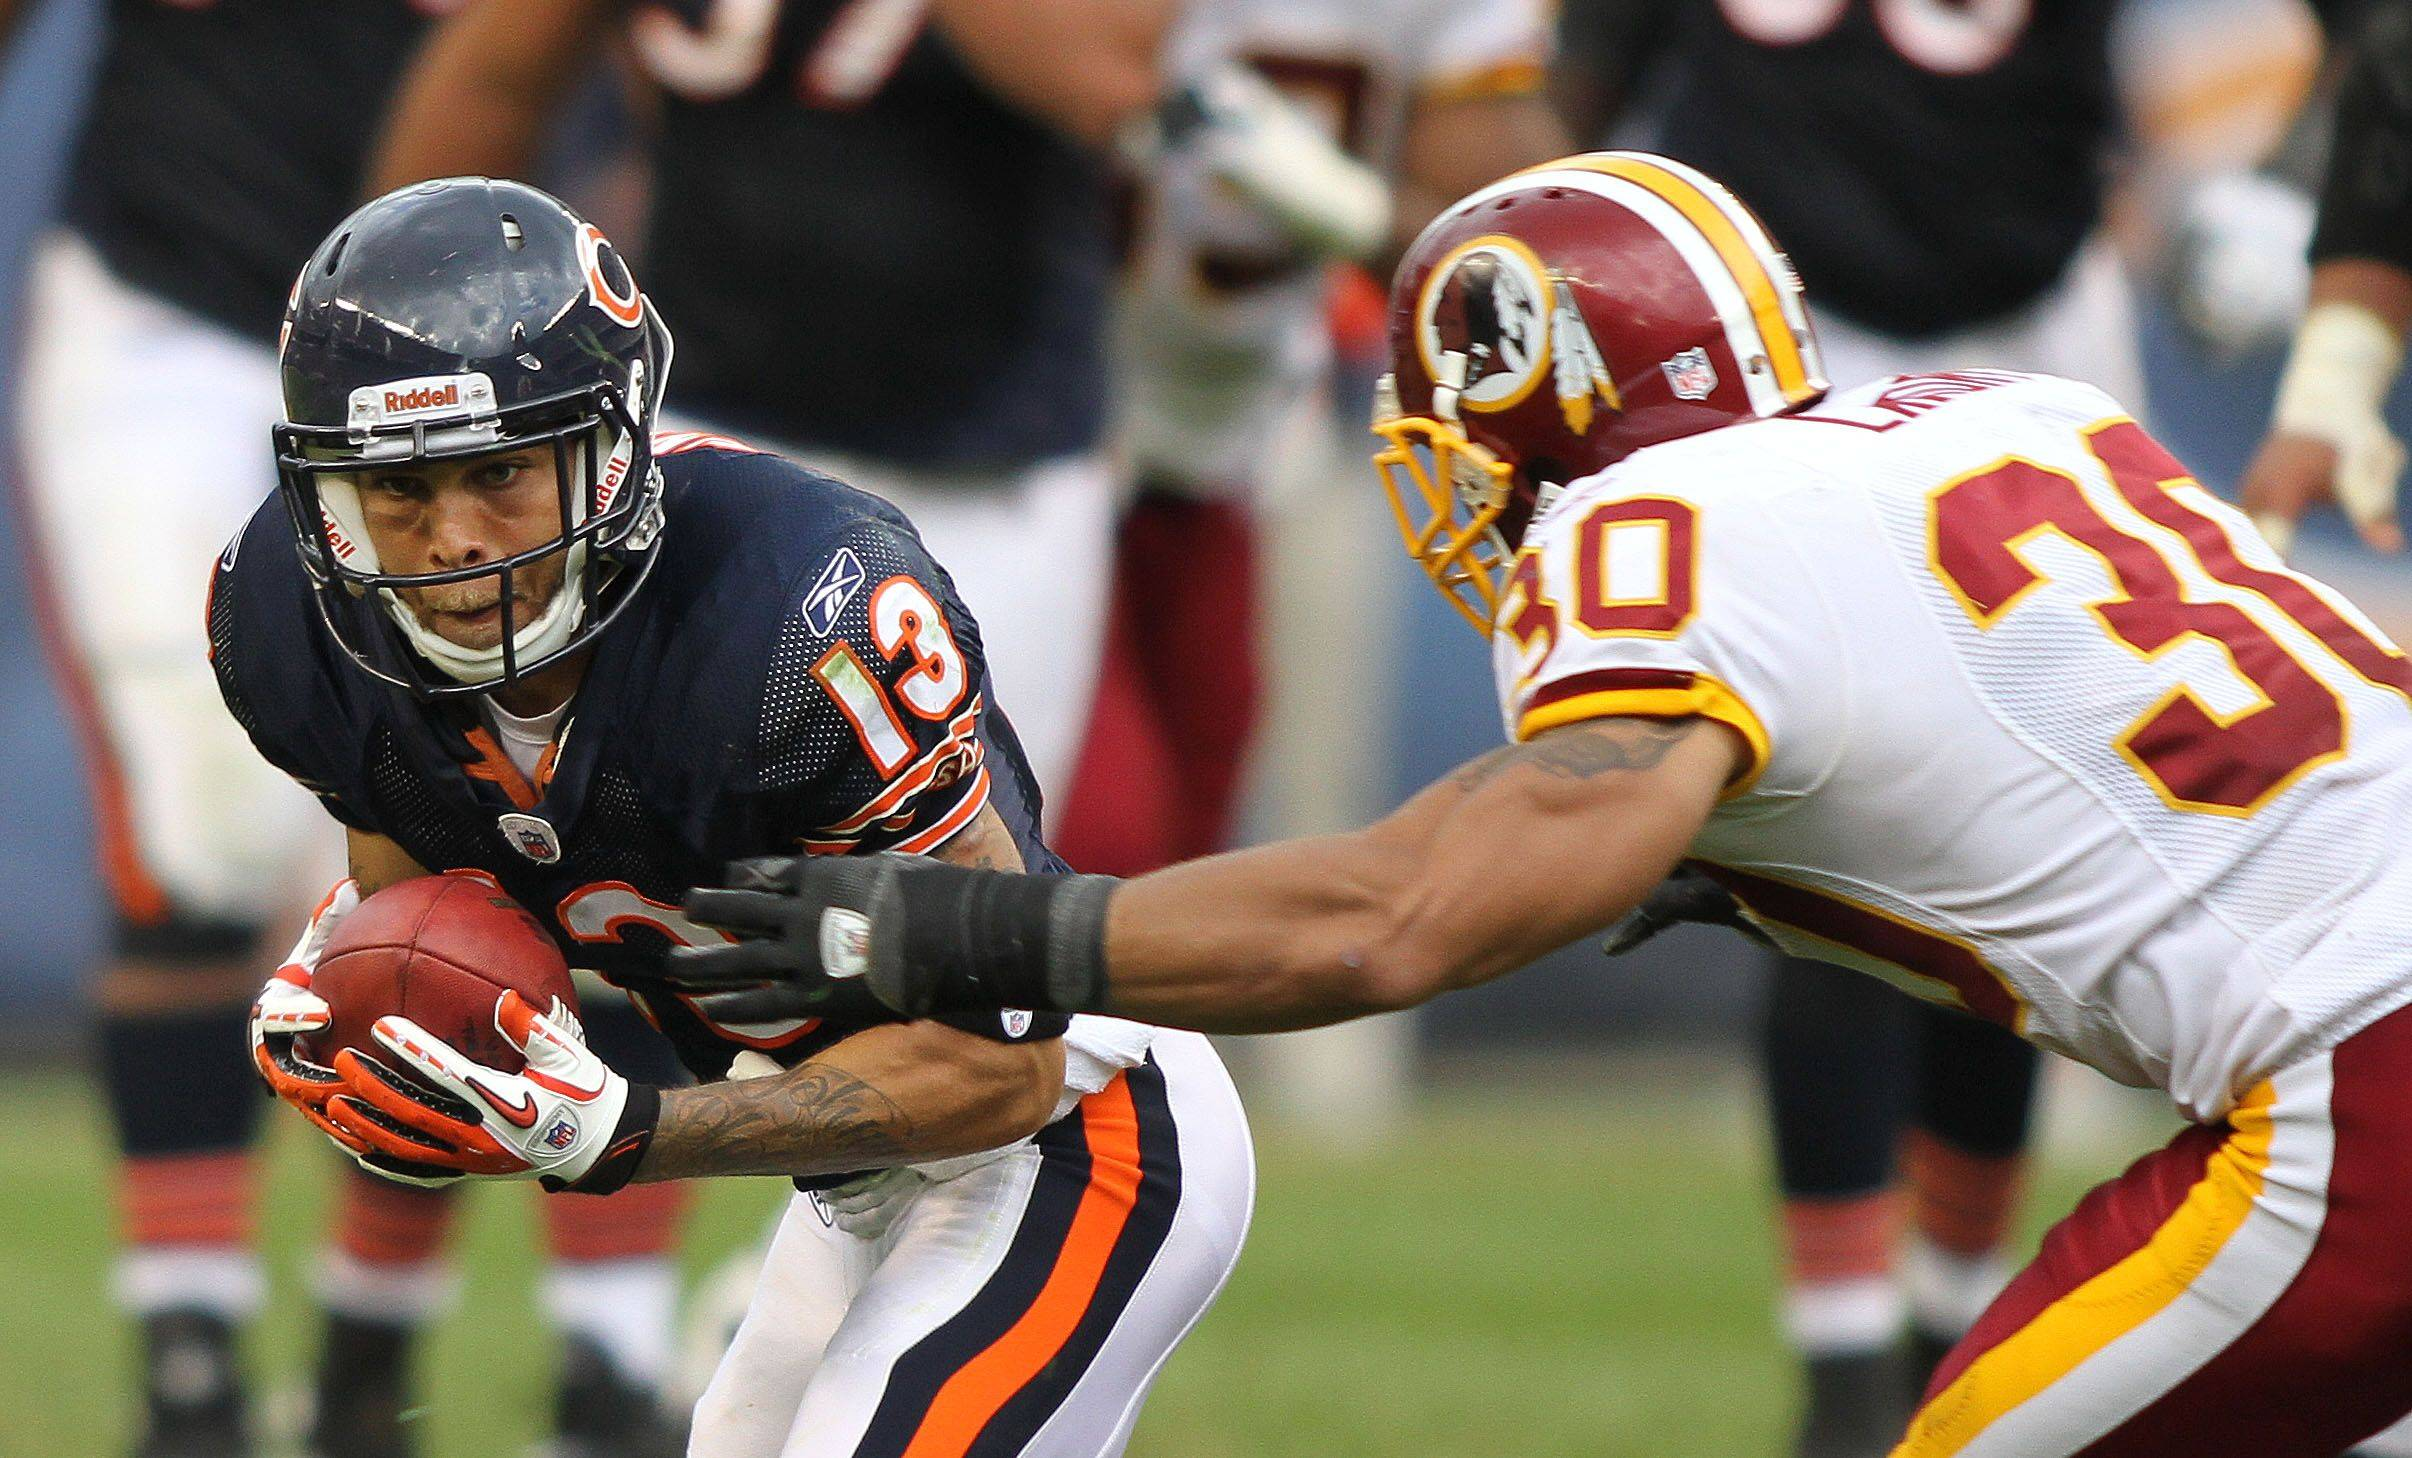 Chicago Bears wide receiver Johnny Knox runs after a catch with Washington Redskins safety LaRon Landry defending during the Bears' 14-17 loss to the Redskins.